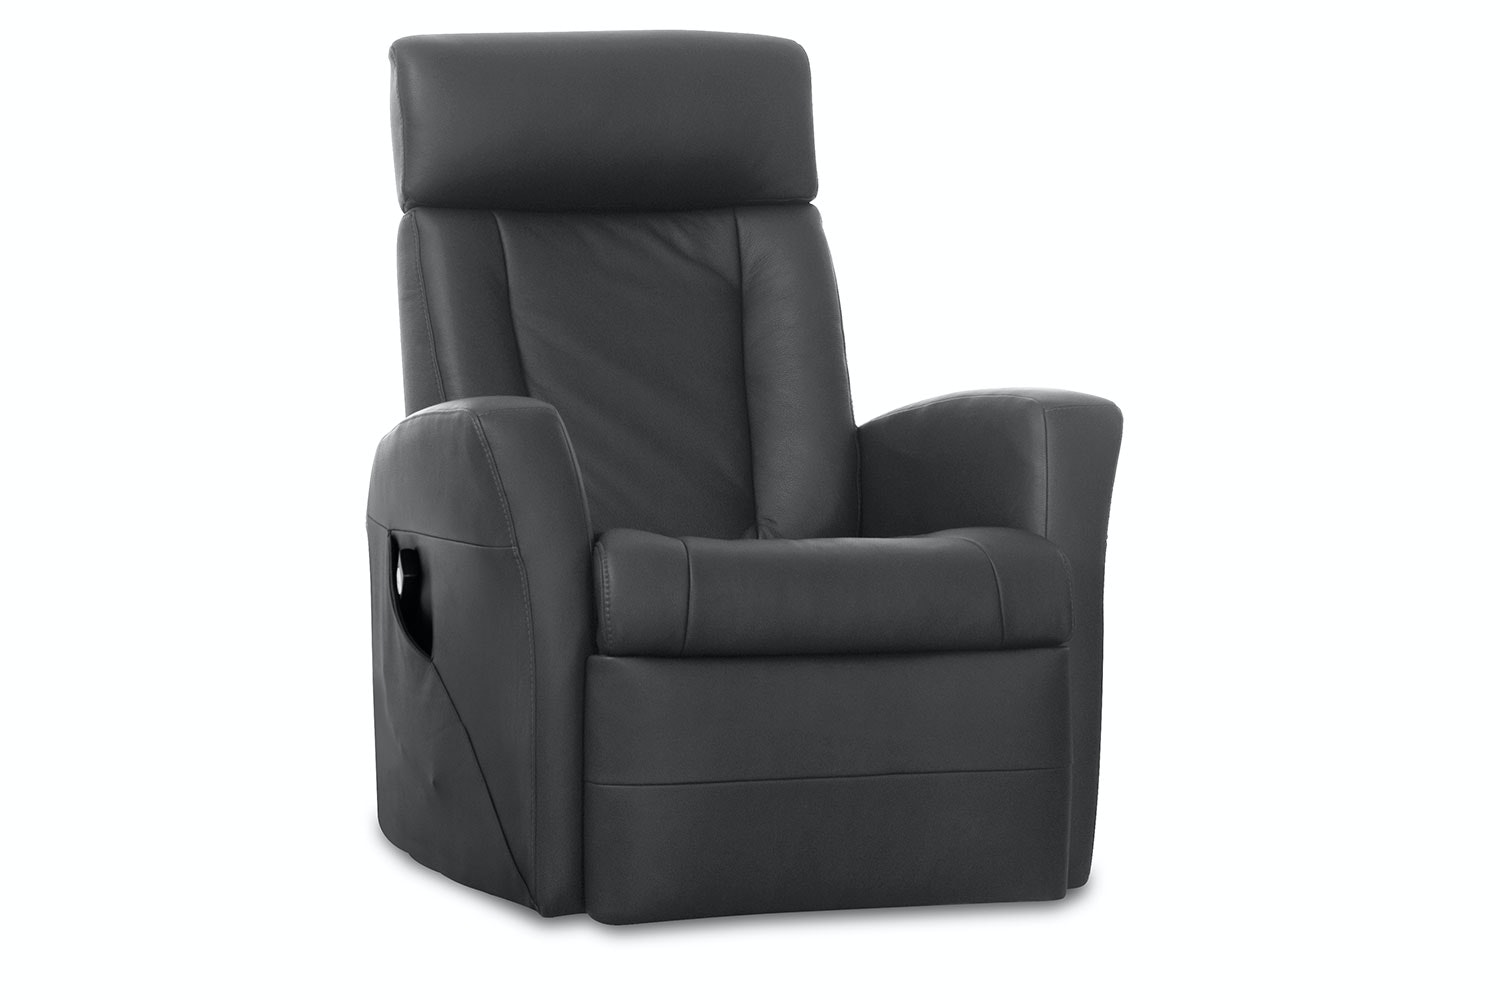 Lotus Leather Multi Function Recliner Chair - Large - Trend - IMG